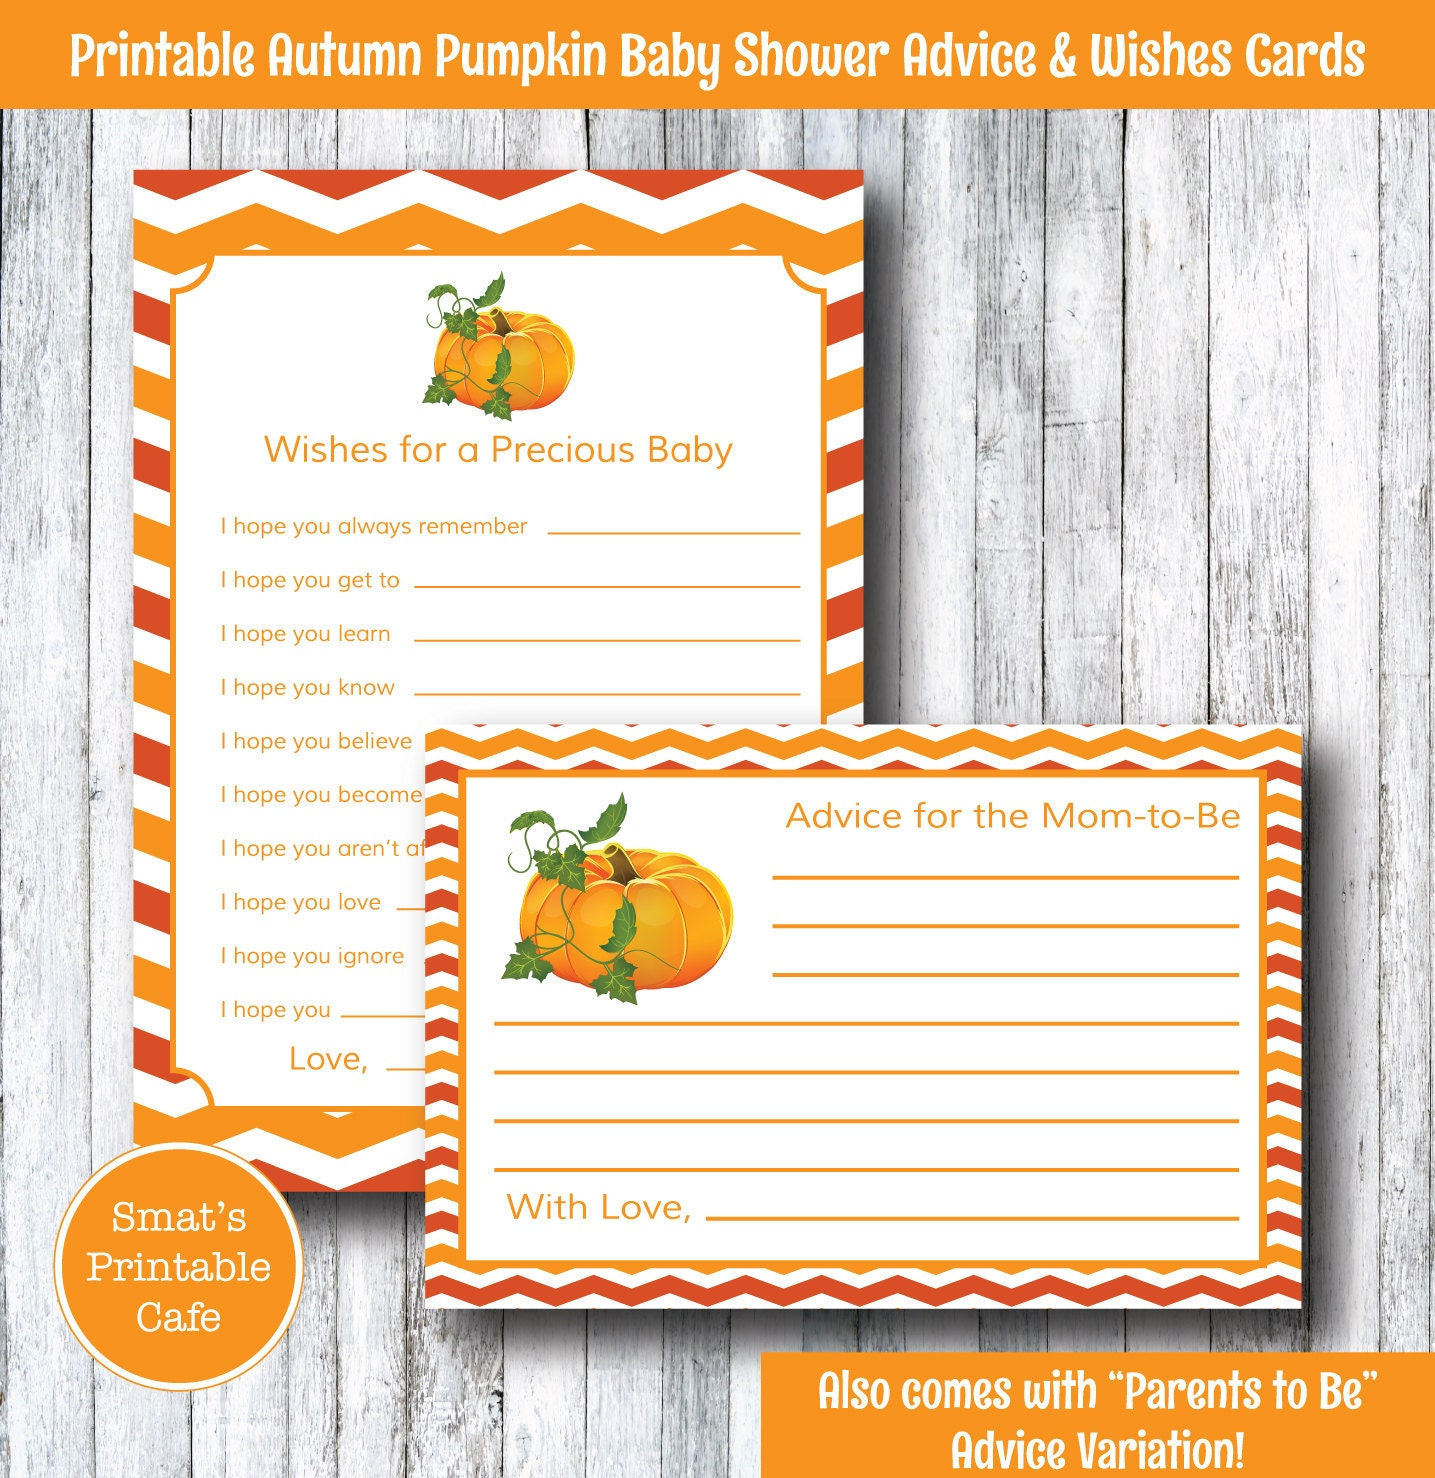 Baby Shower Message For Card: Autumn Fall Pumpkin Baby Shower Wishes & Advice Cards